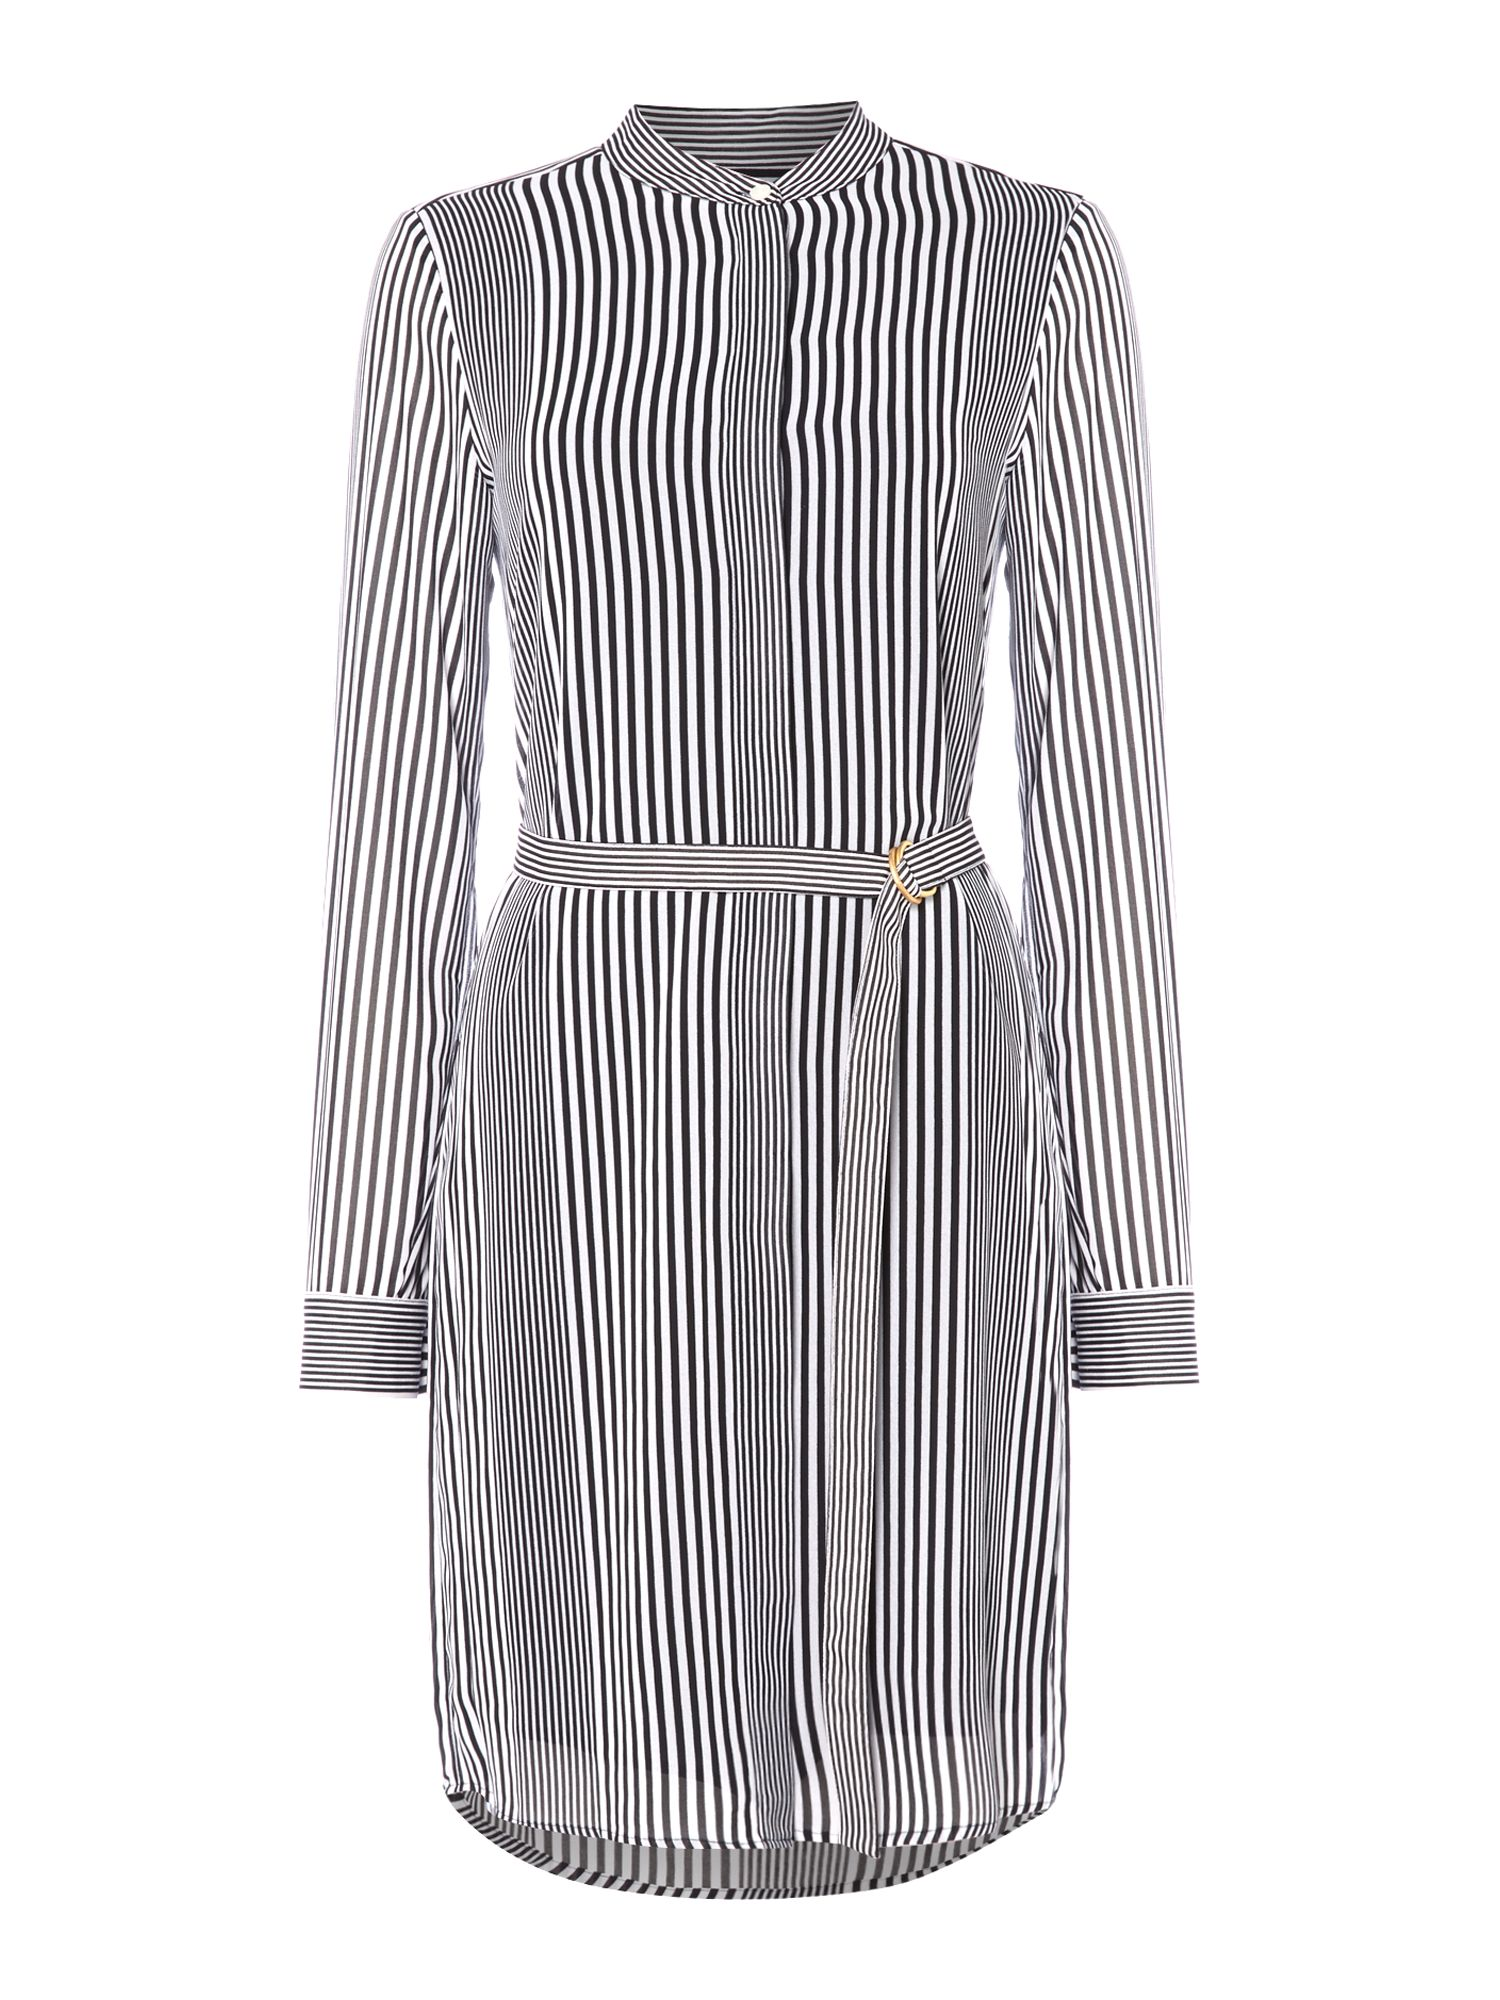 Michael Kors Longsleeve Striped Belted Tunic Dress, White